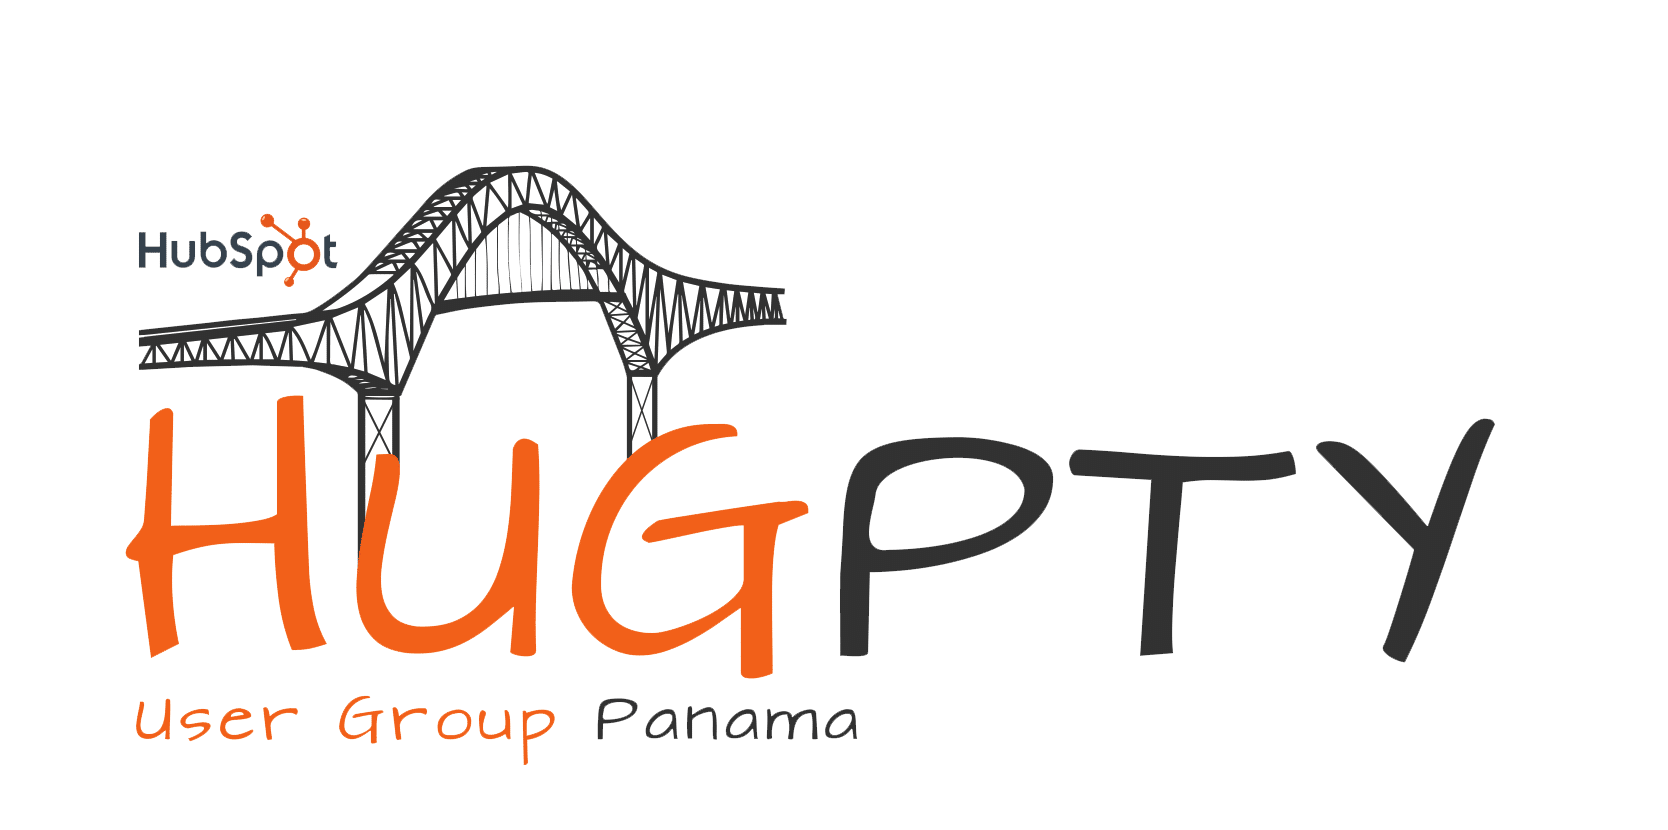 HUG HubSpot Group logo updated-1kopie.png